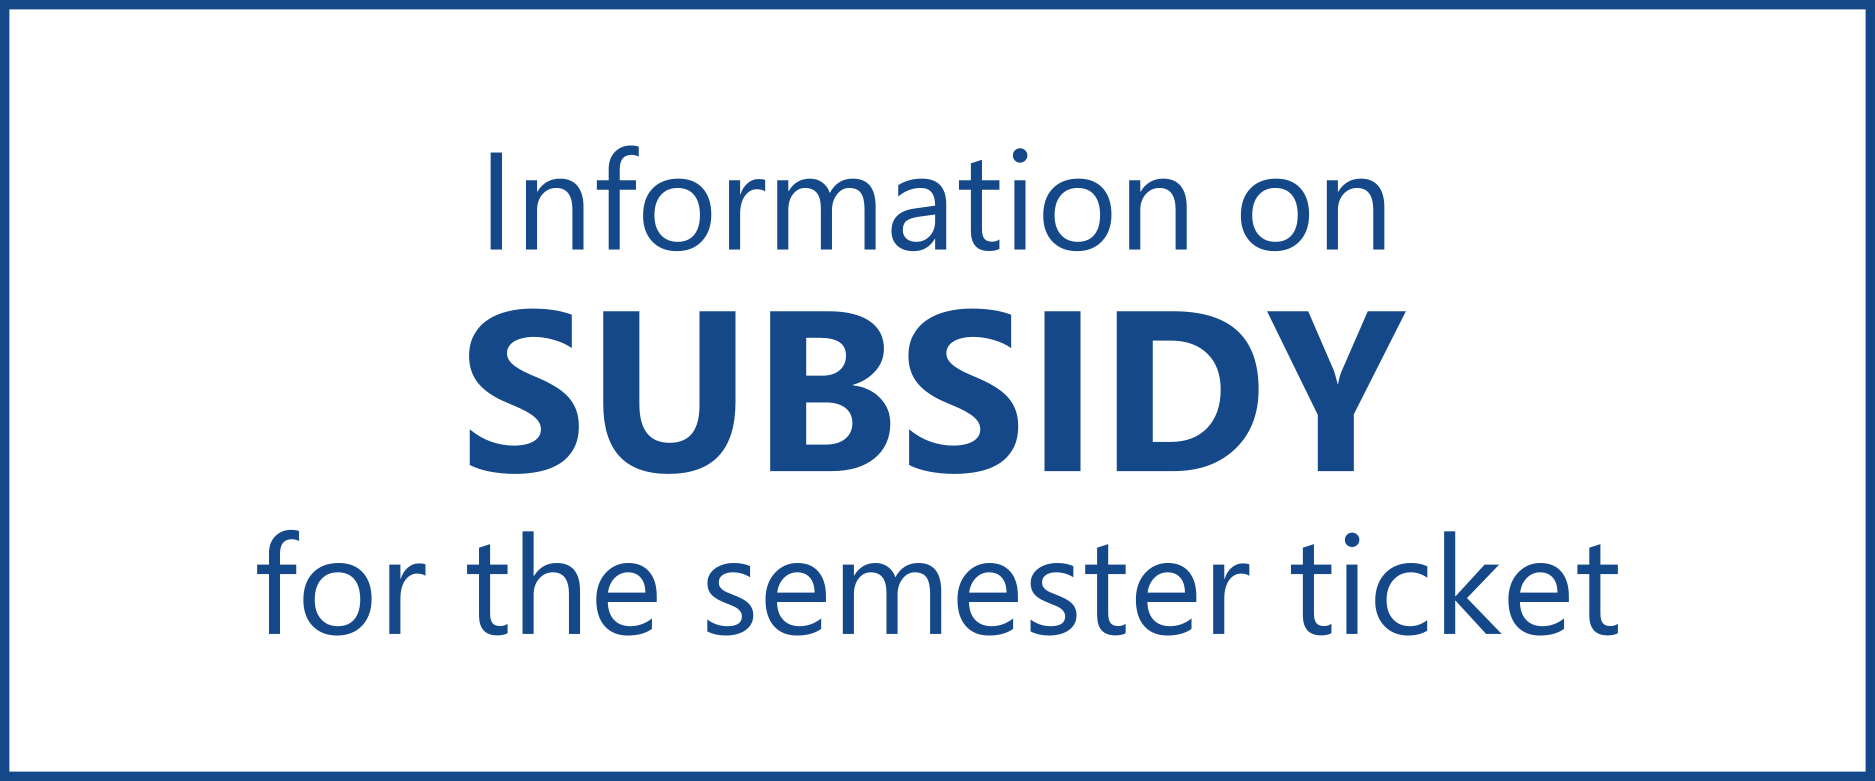 Information on subsidy for the semester ticket